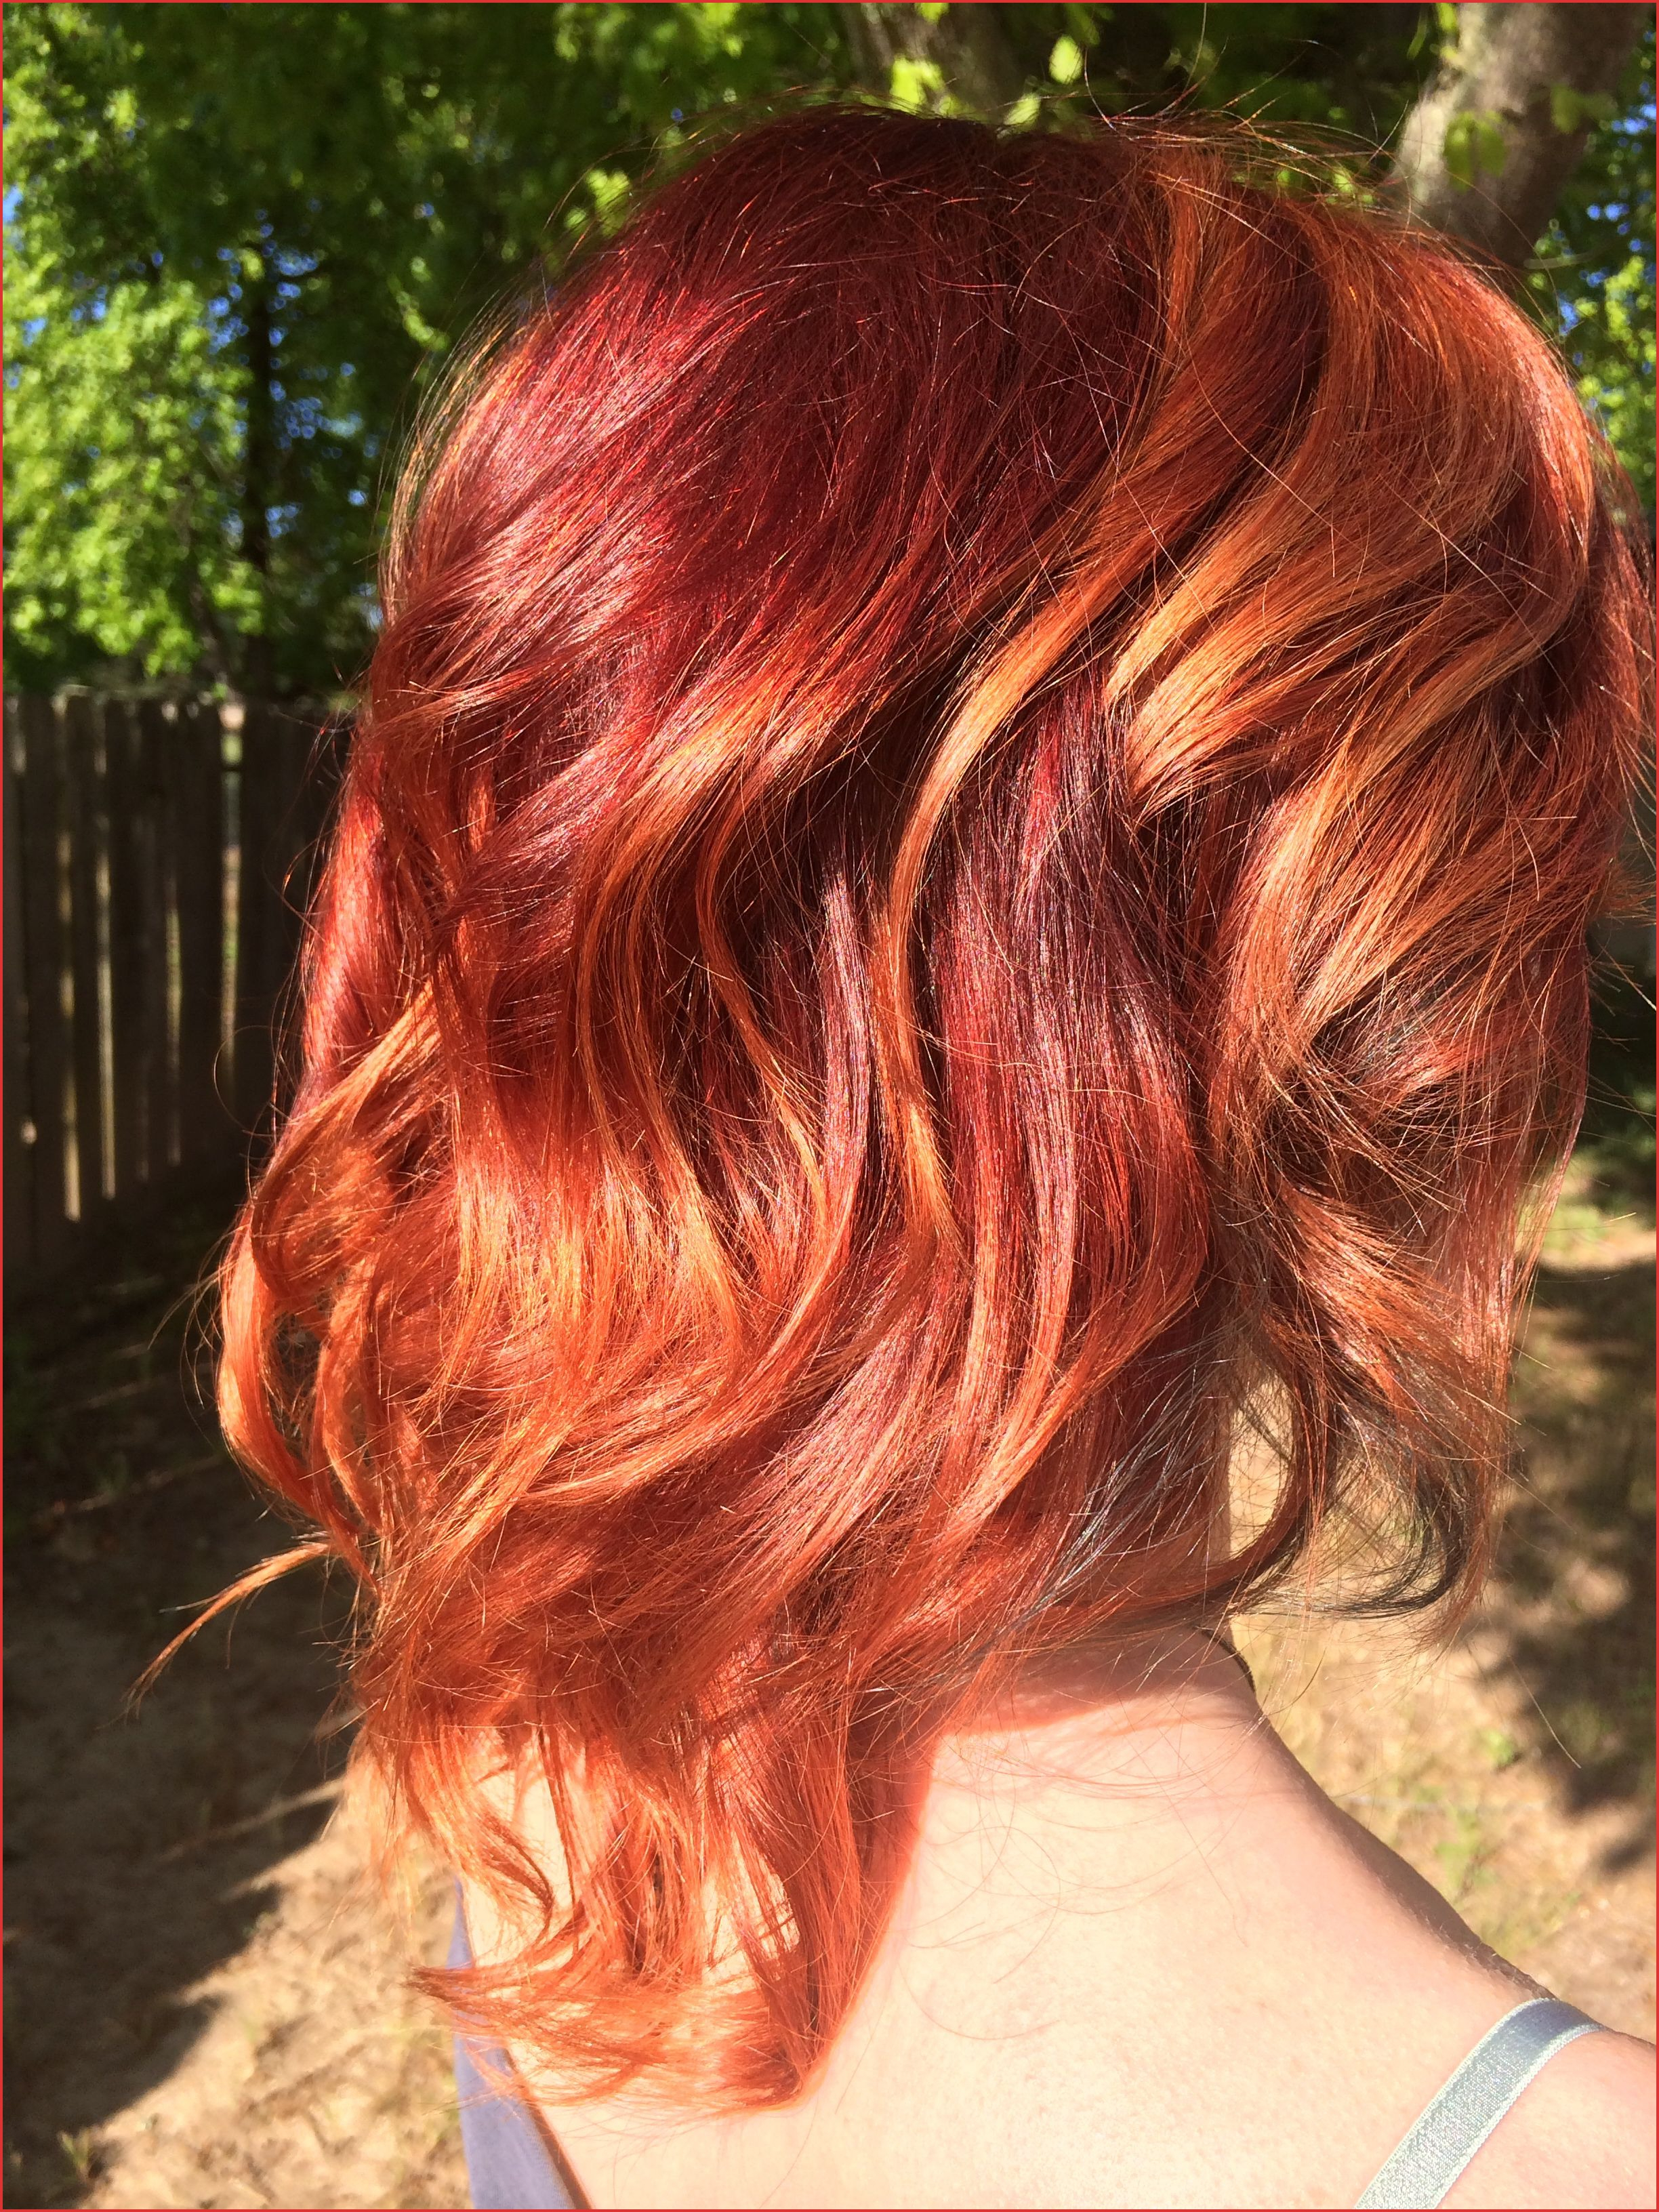 Medium Reddish Brown Hair Color 26939 Balayage Red Hair And Blonde Inside 2018 Medium Haircuts With Fiery Ombre Layers (View 12 of 20)